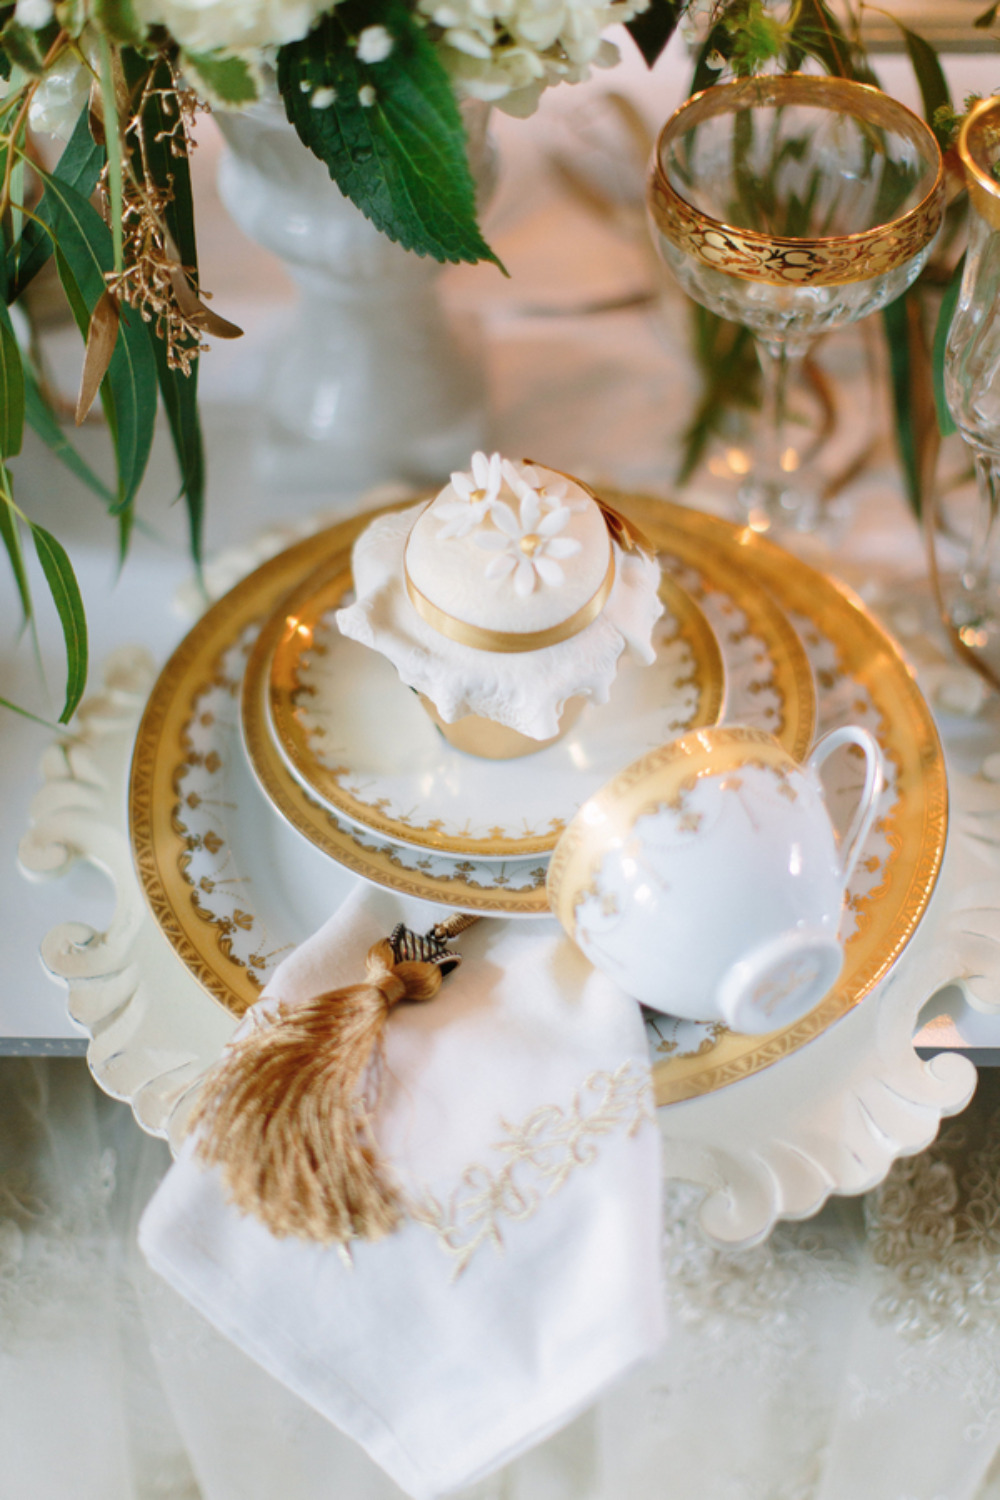 cupcake teacup place setting